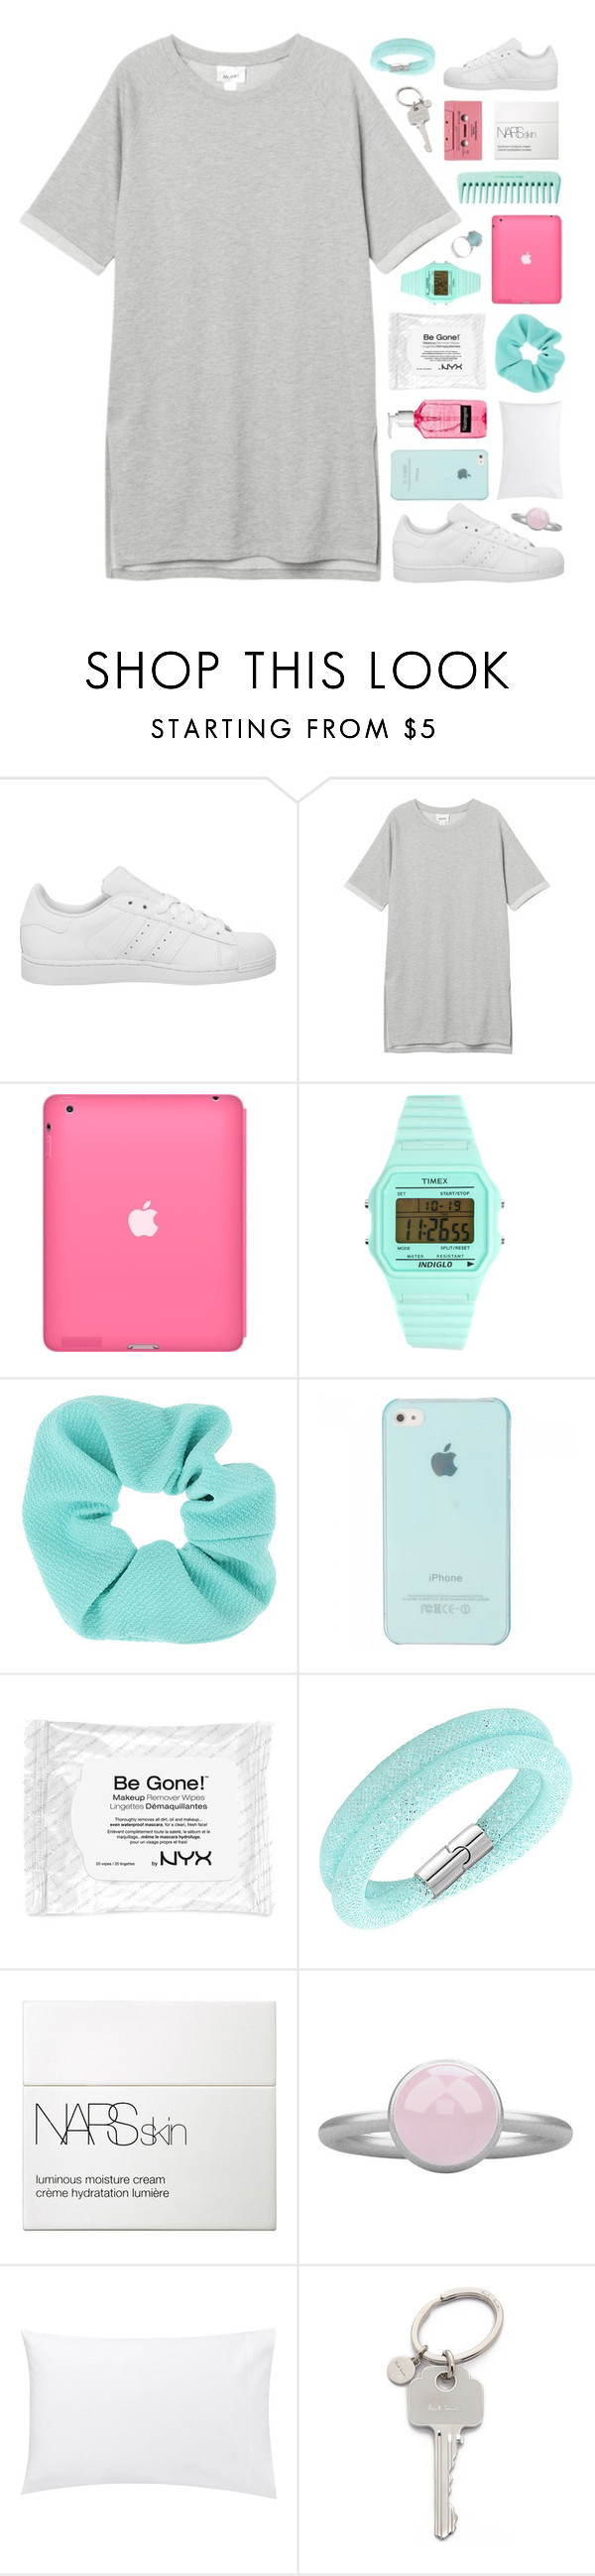 """""""mari"""" by le-rosie ❤ liked on Polyvore featuring adidas, Monki, Timex, Topshop, Swarovski, NARS Cosmetics, Pieces, Jigsaw and Paul Smith"""